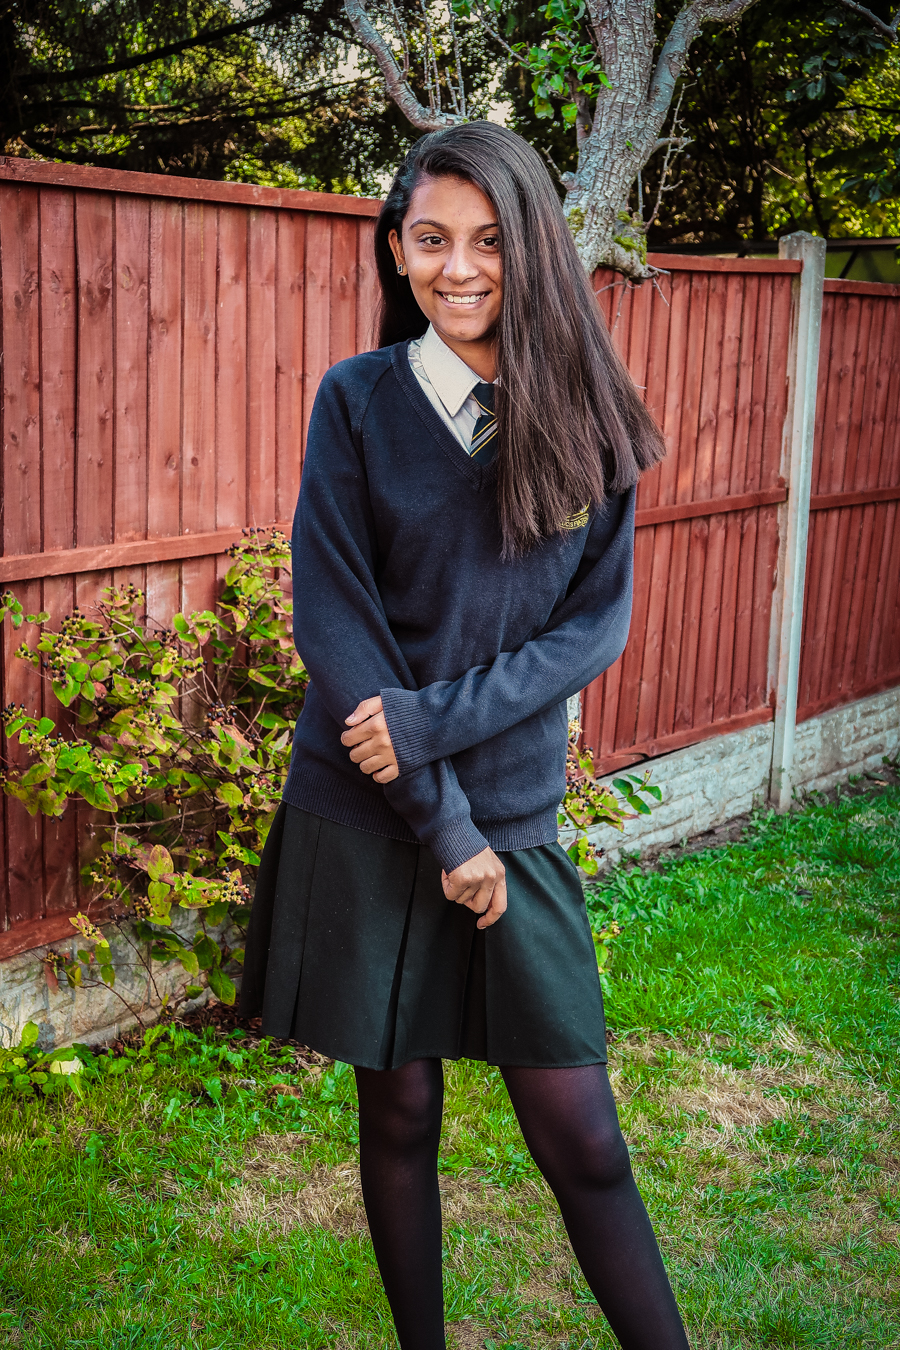 Back To School - Shalini in her uniform